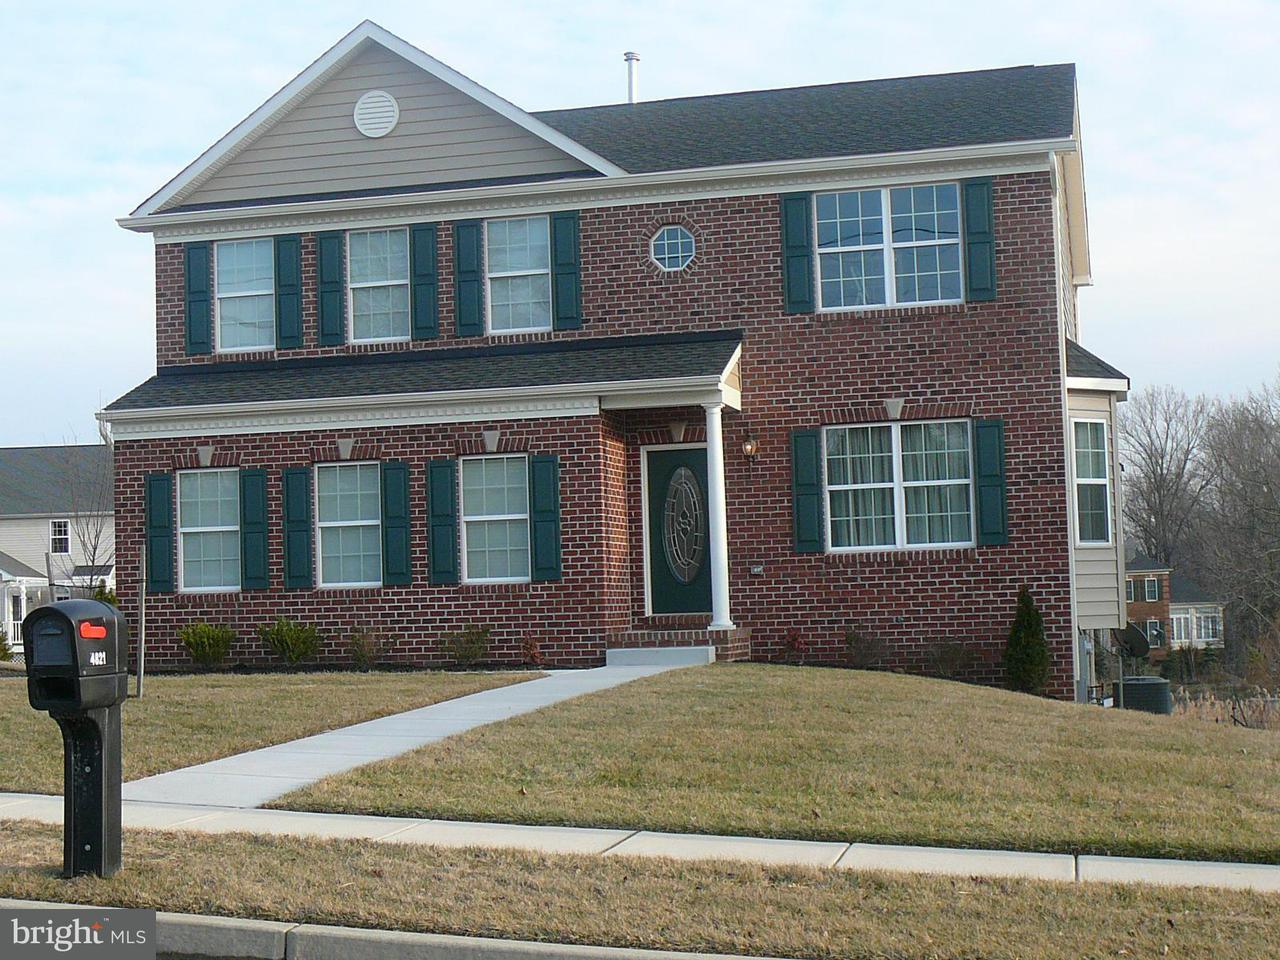 Vivienda unifamiliar por un Venta en 4511 Bucks School House Road 4511 Bucks School House Road Rosedale, Maryland 21237 Estados Unidos